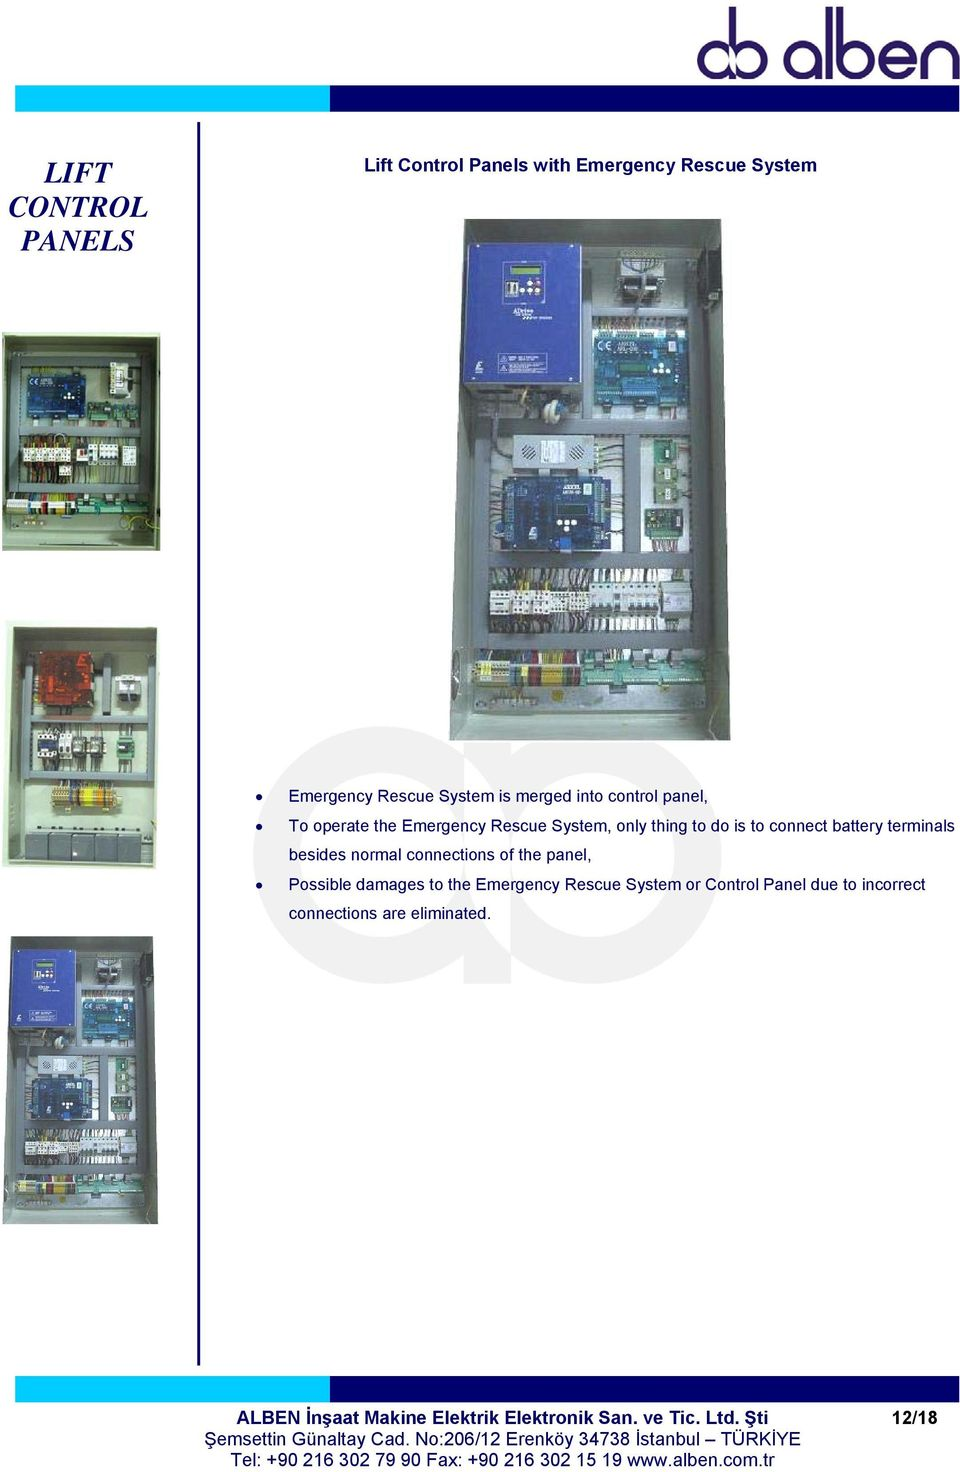 besides normal connections of the panel, Possible damages to the Emergency Rescue System or Control Panel